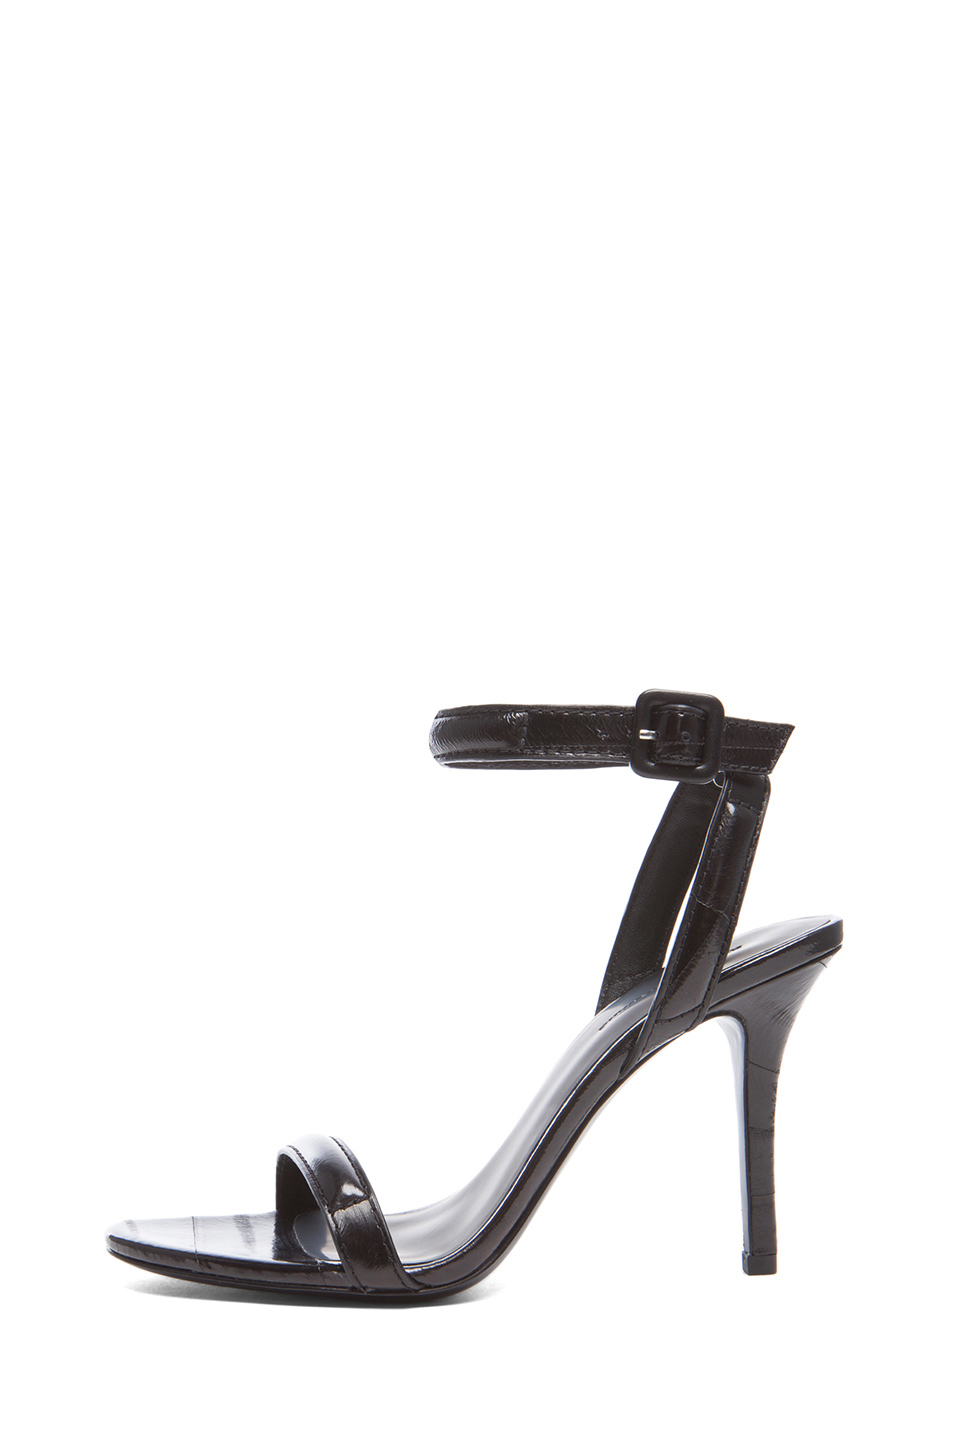 Alexander Wang | Antonia Leather Heels in Black